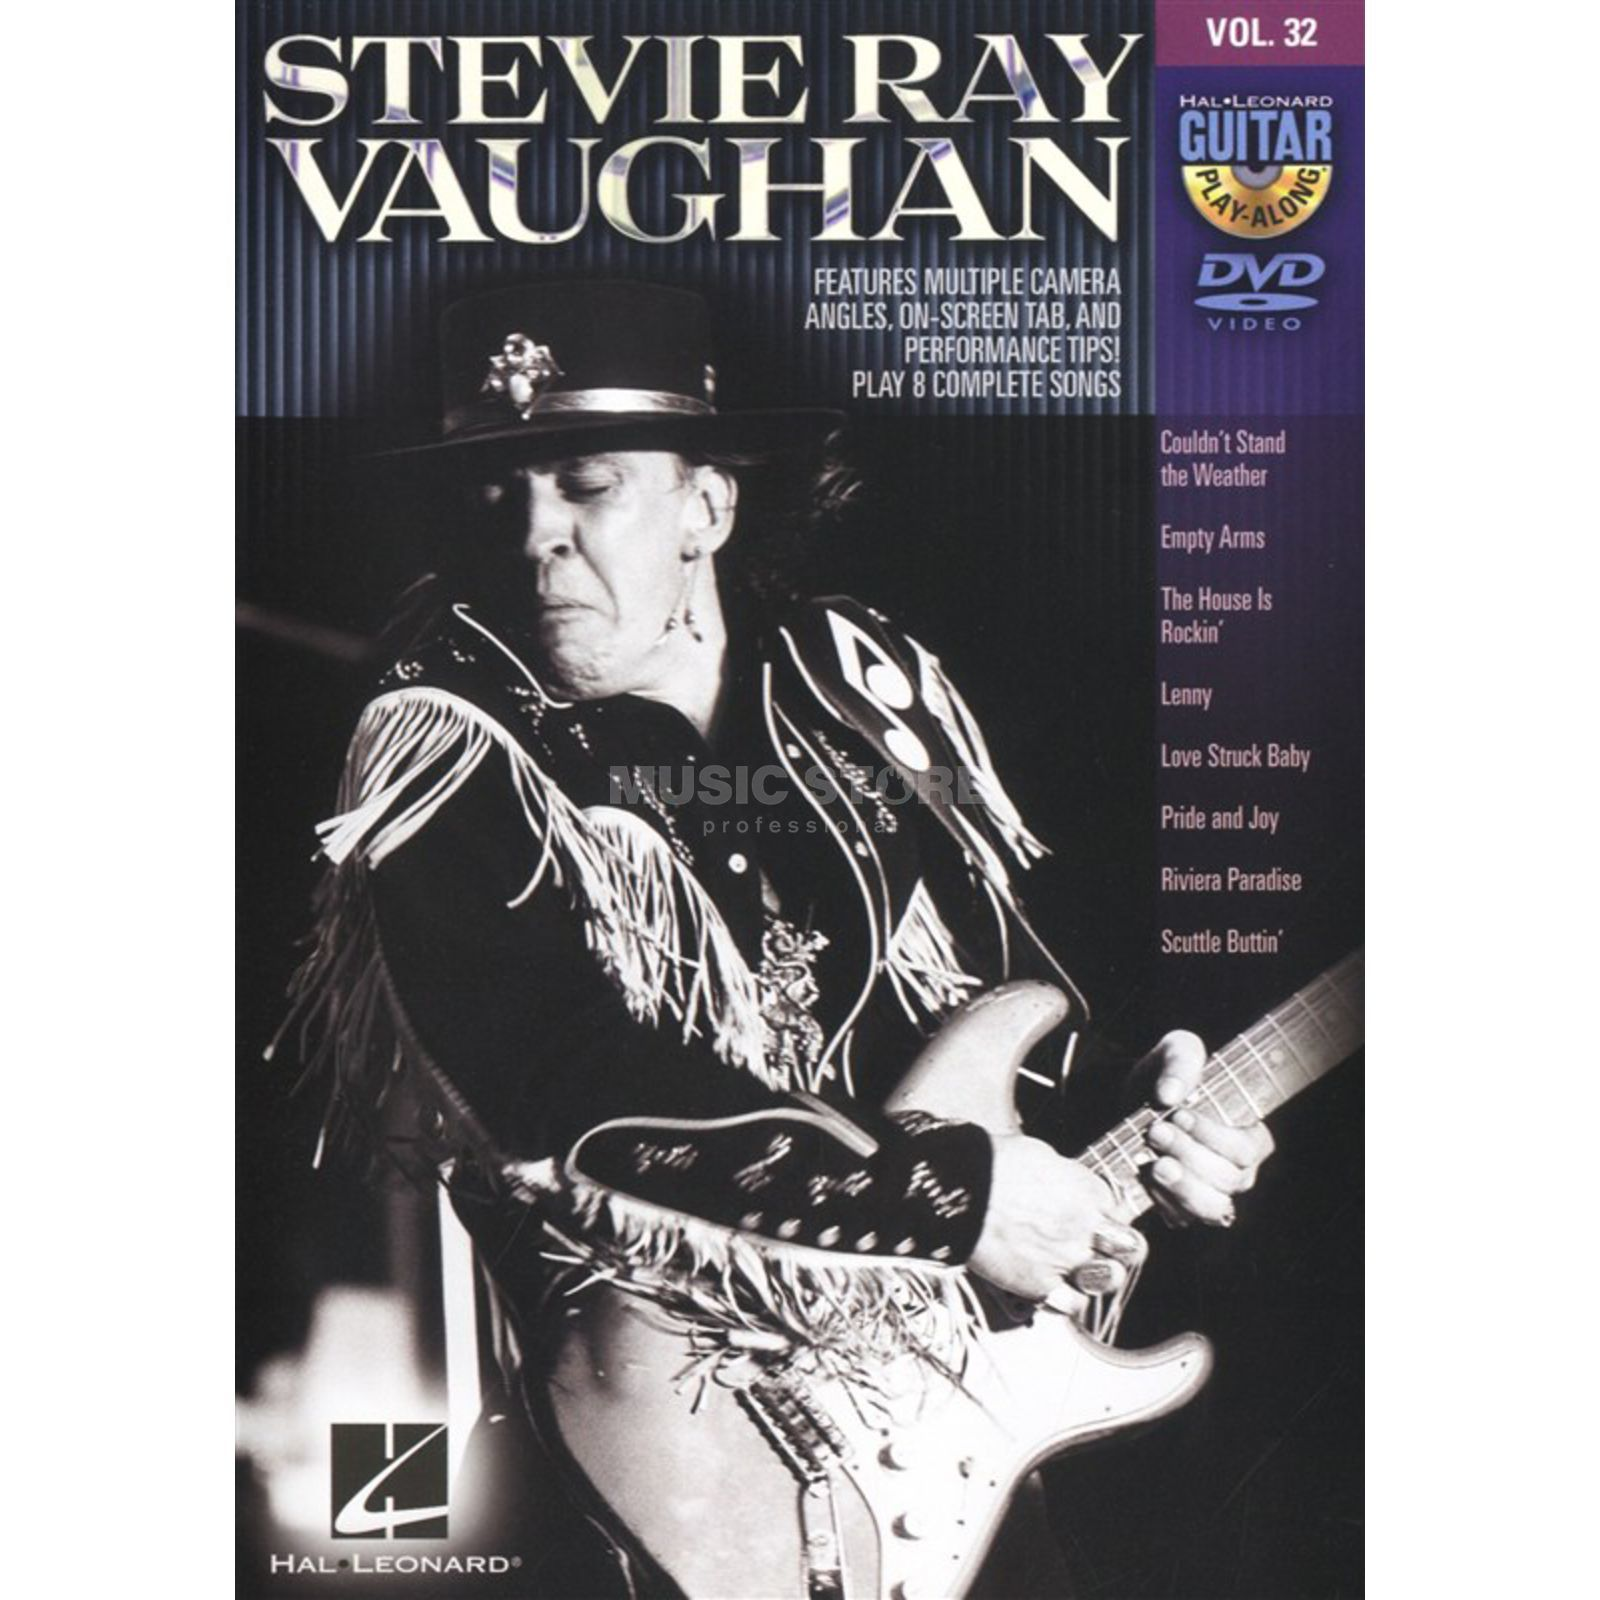 Hal Leonard Guitar Play-Along: Stevie Ray Vaughan Vol. 32, DVD Produktbillede